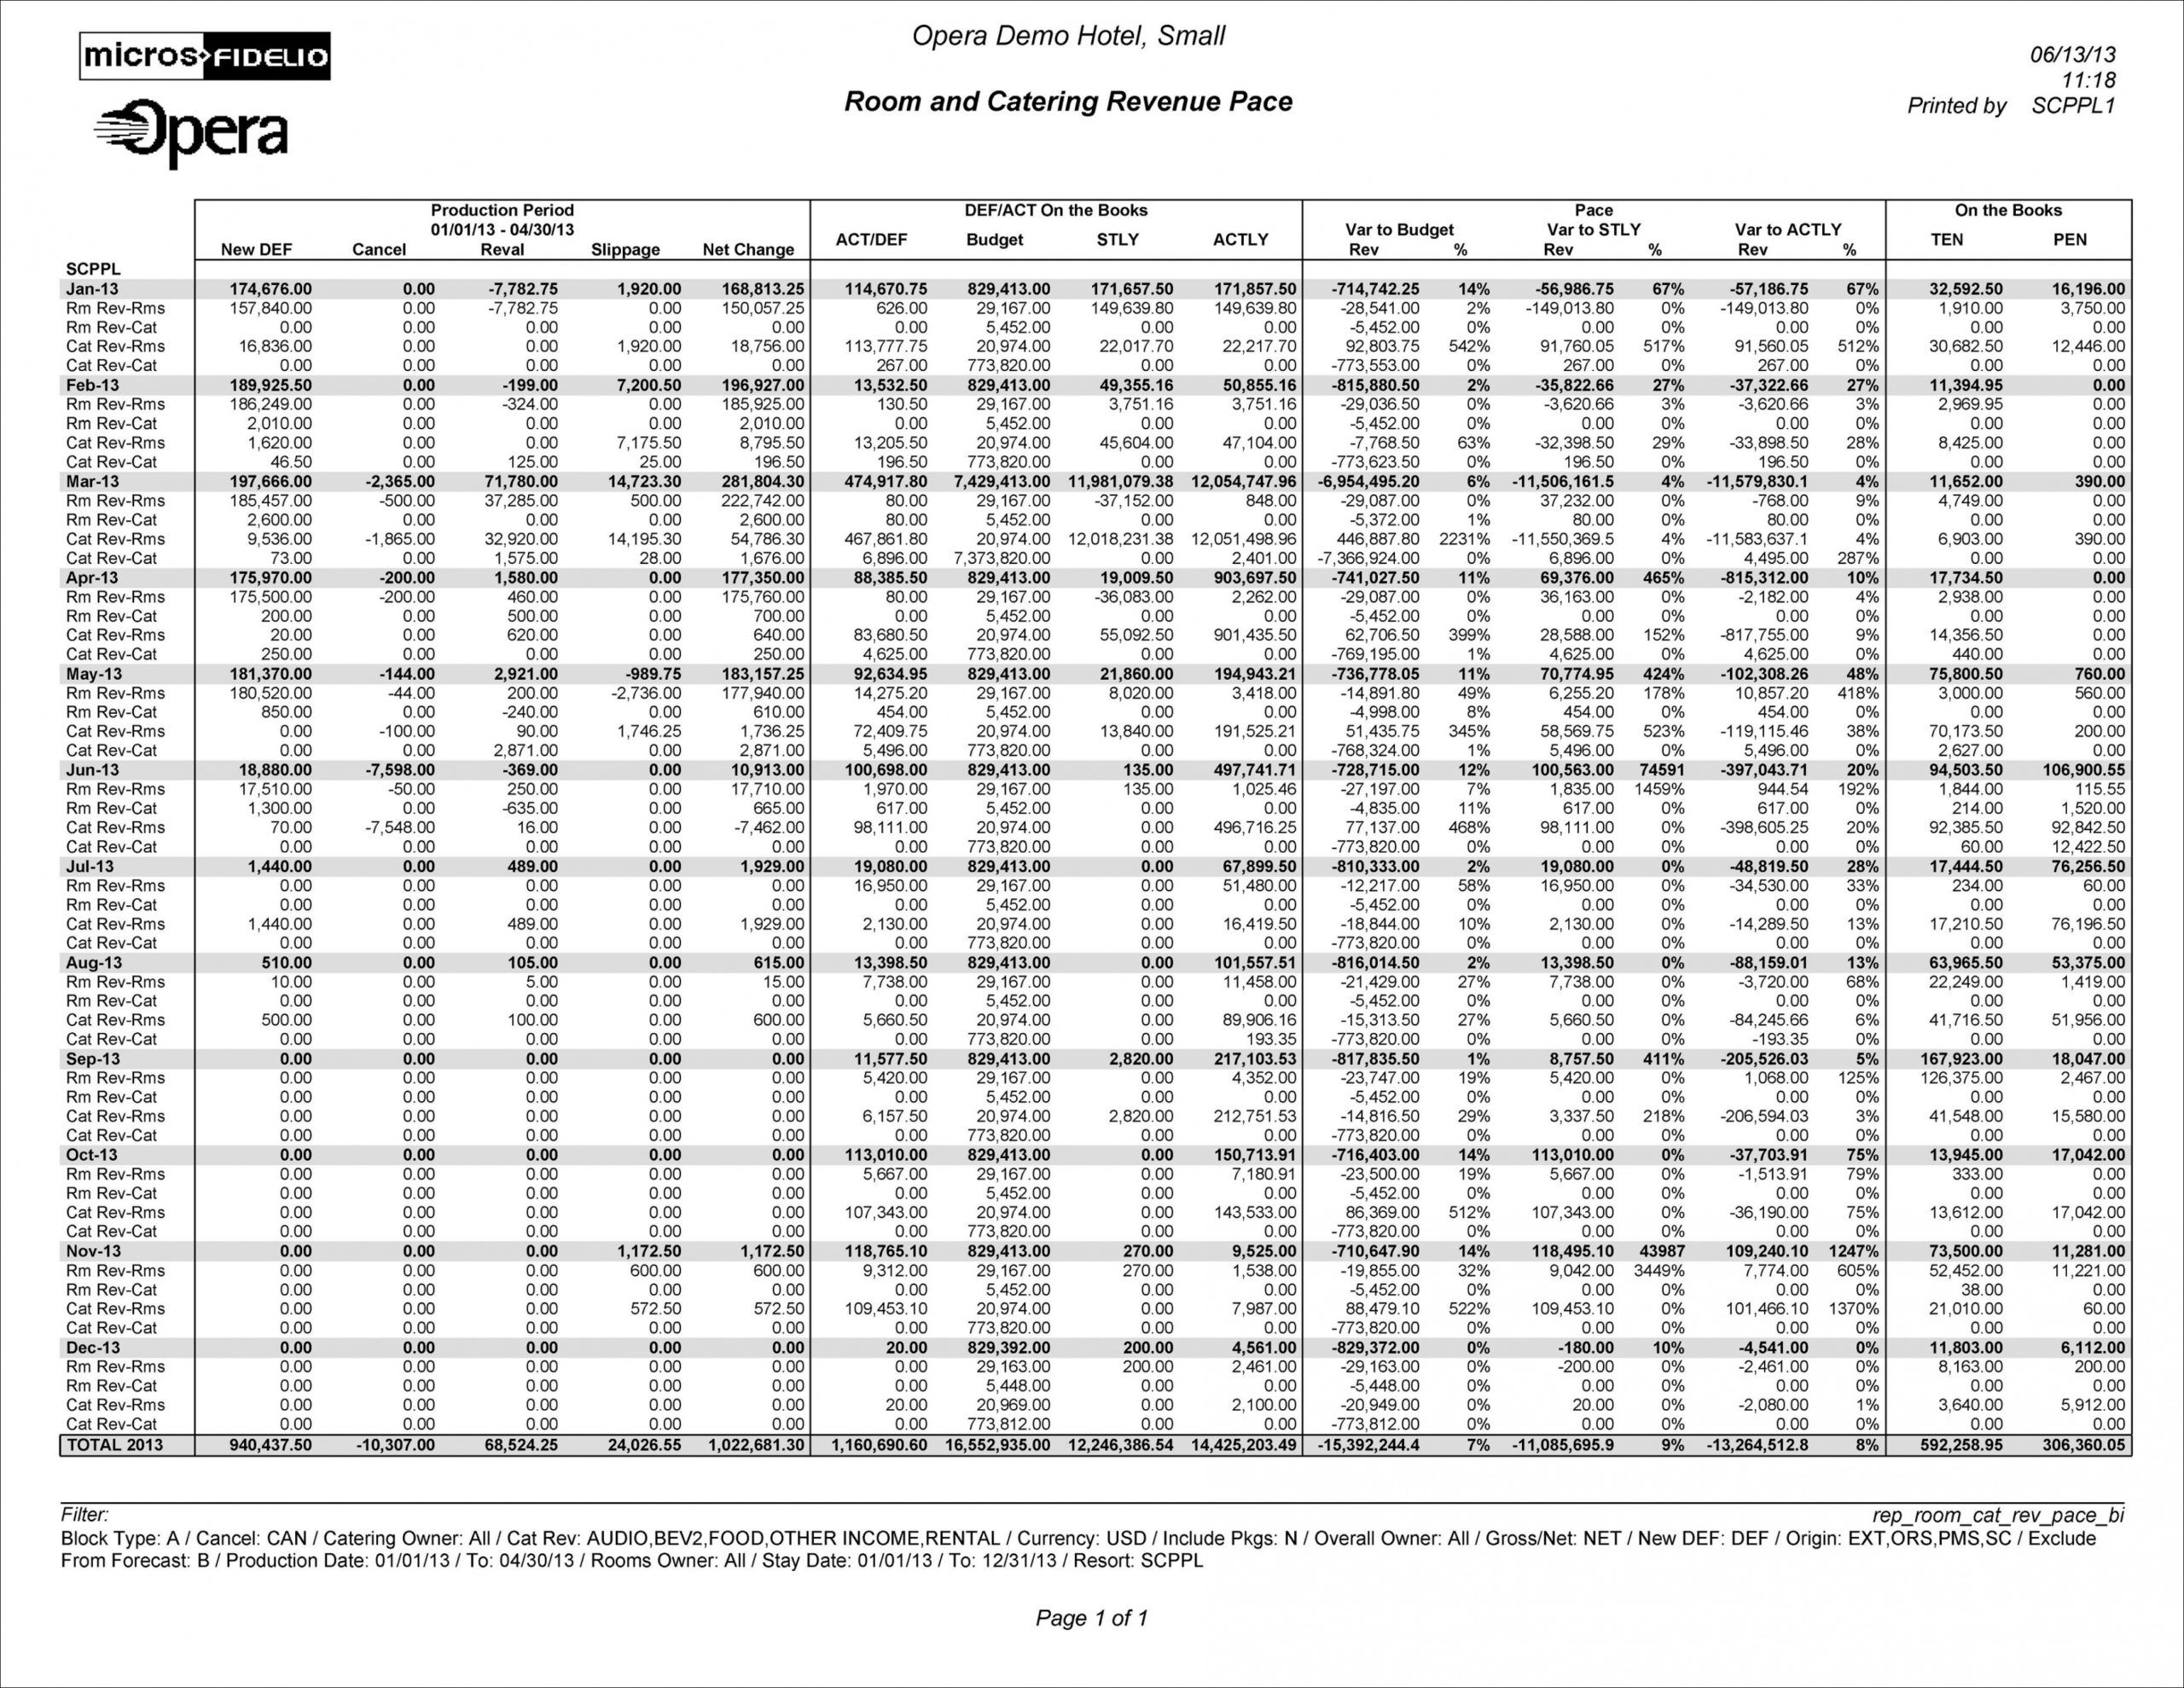 sample room and catering revenue pace bi hotel pace report template word